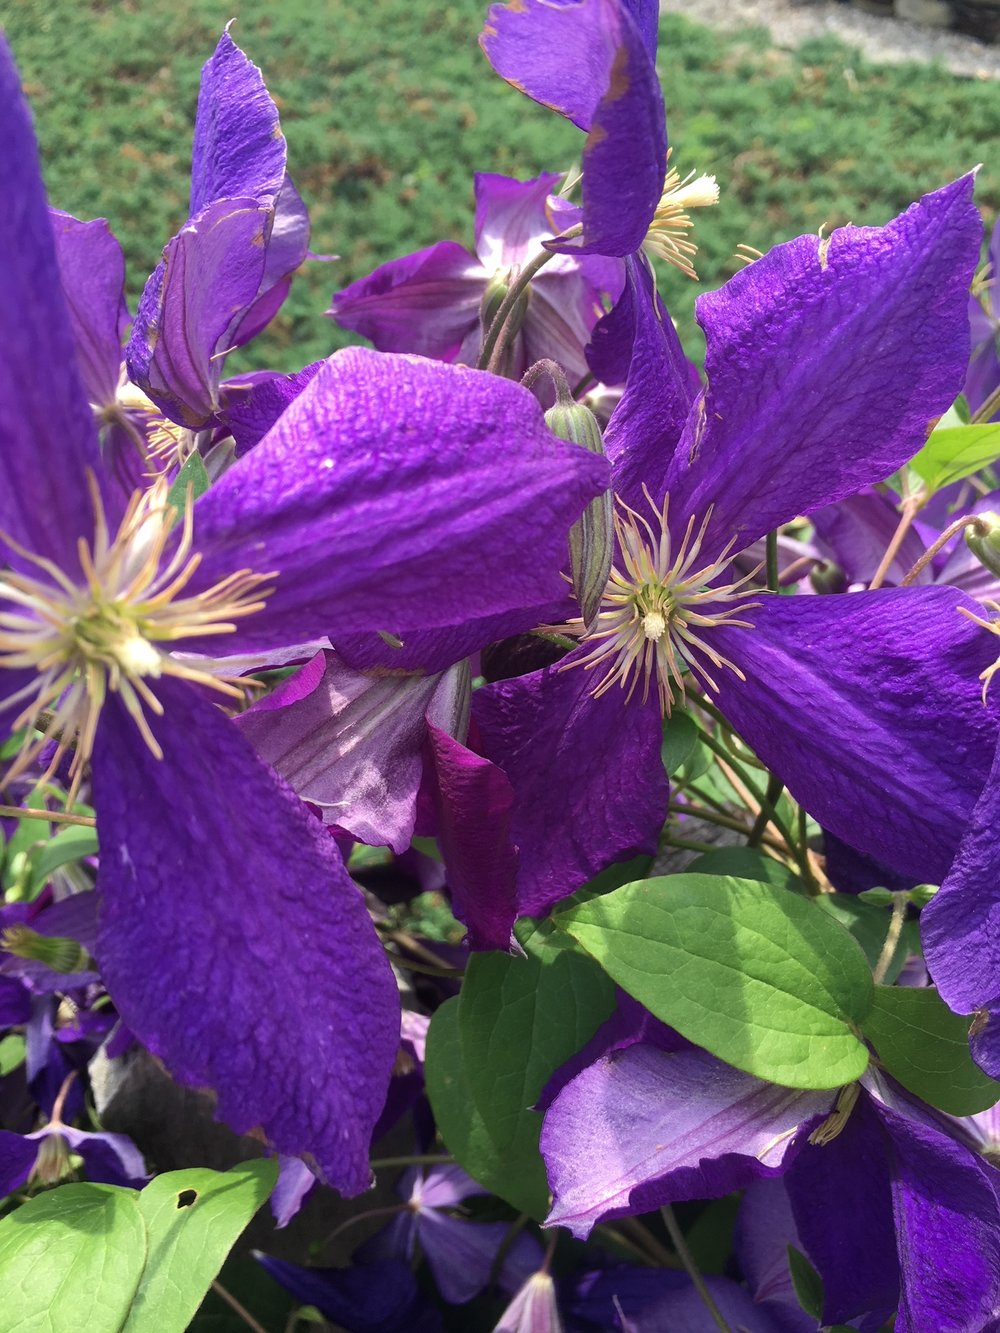 I love clematis! So pretty!